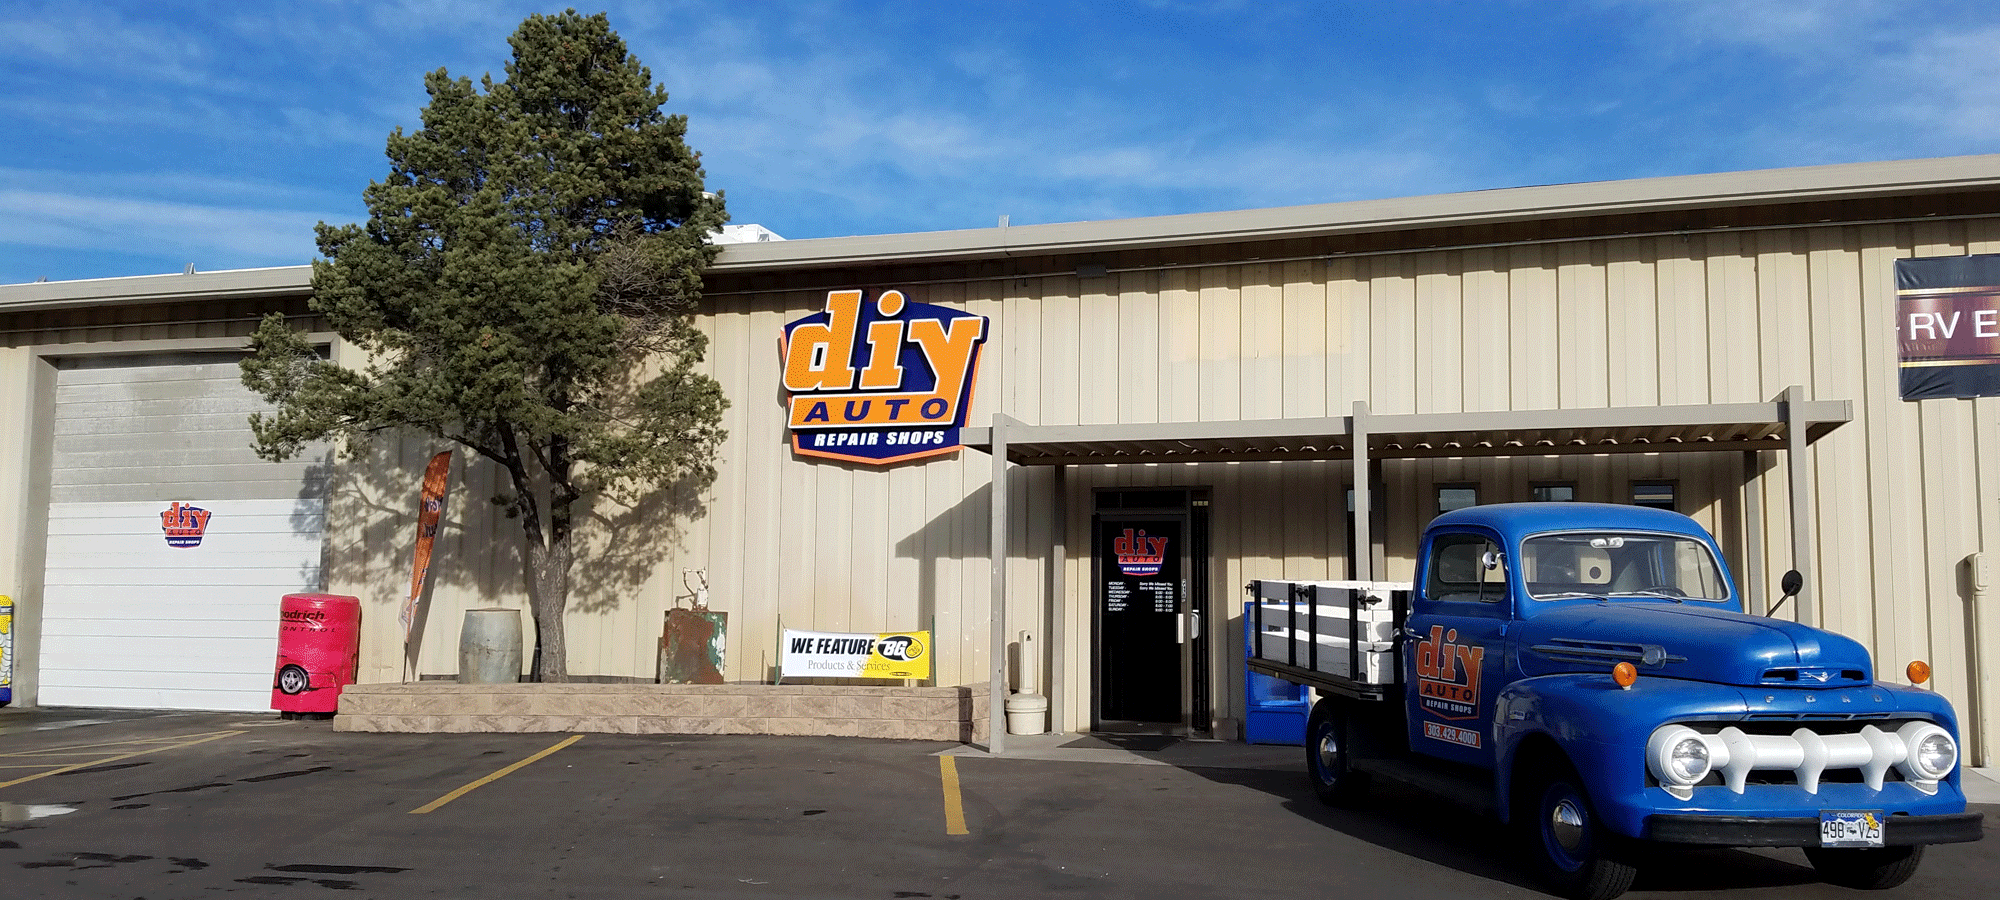 Diy auto repair garage dfw clublifeglobal diy auto repair s equipped self service garage bays solutioingenieria Choice Image